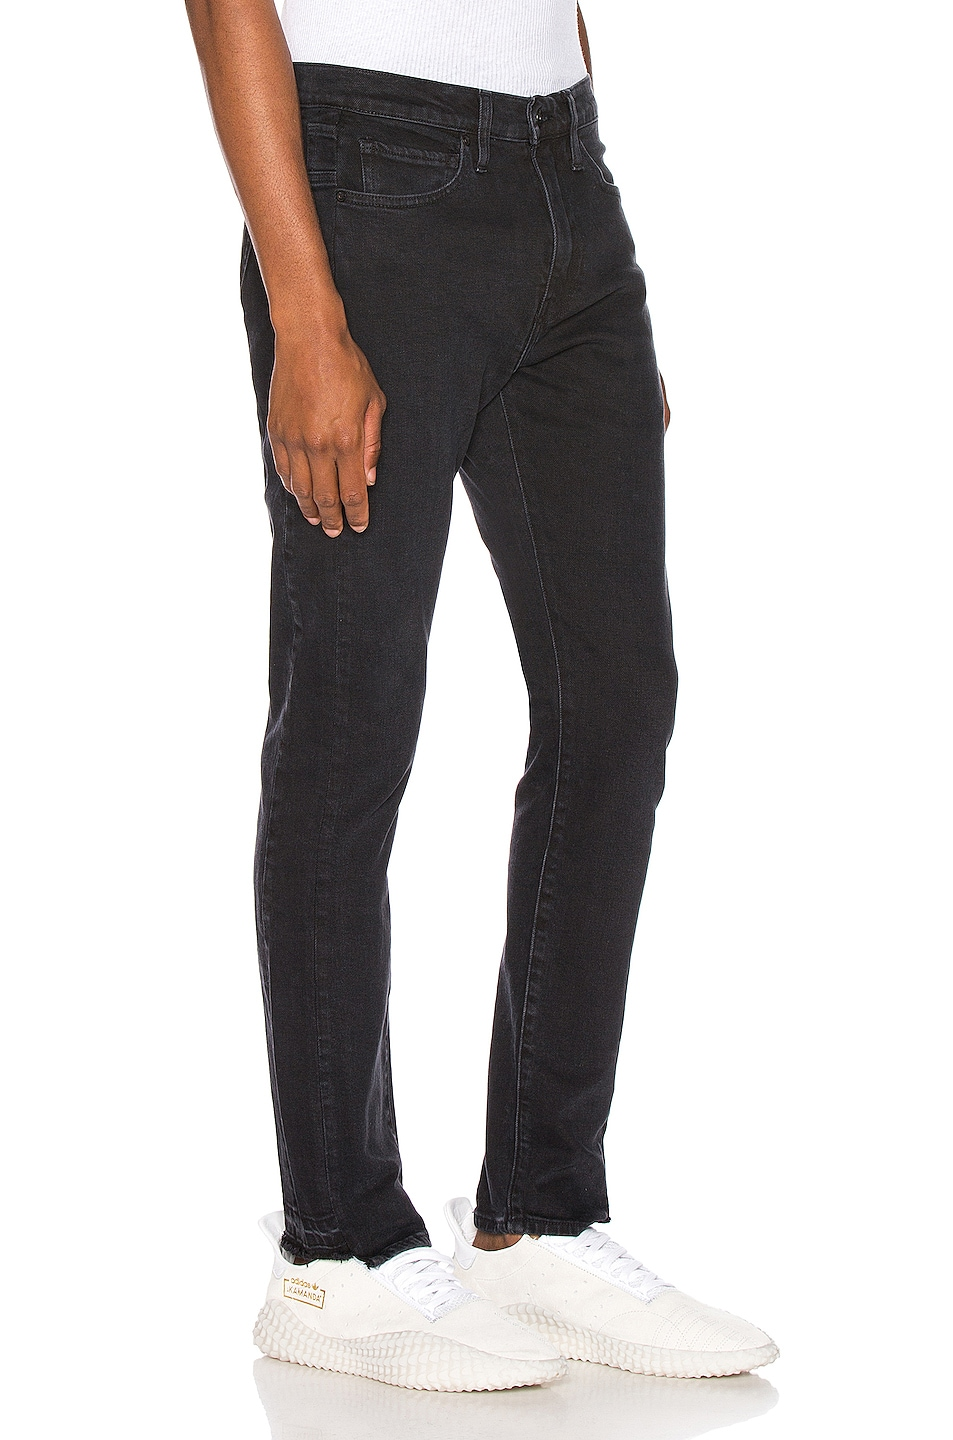 Image 2 of LEVI'S: Made & Crafted 510 Skinny Jean in Pieced Double Black